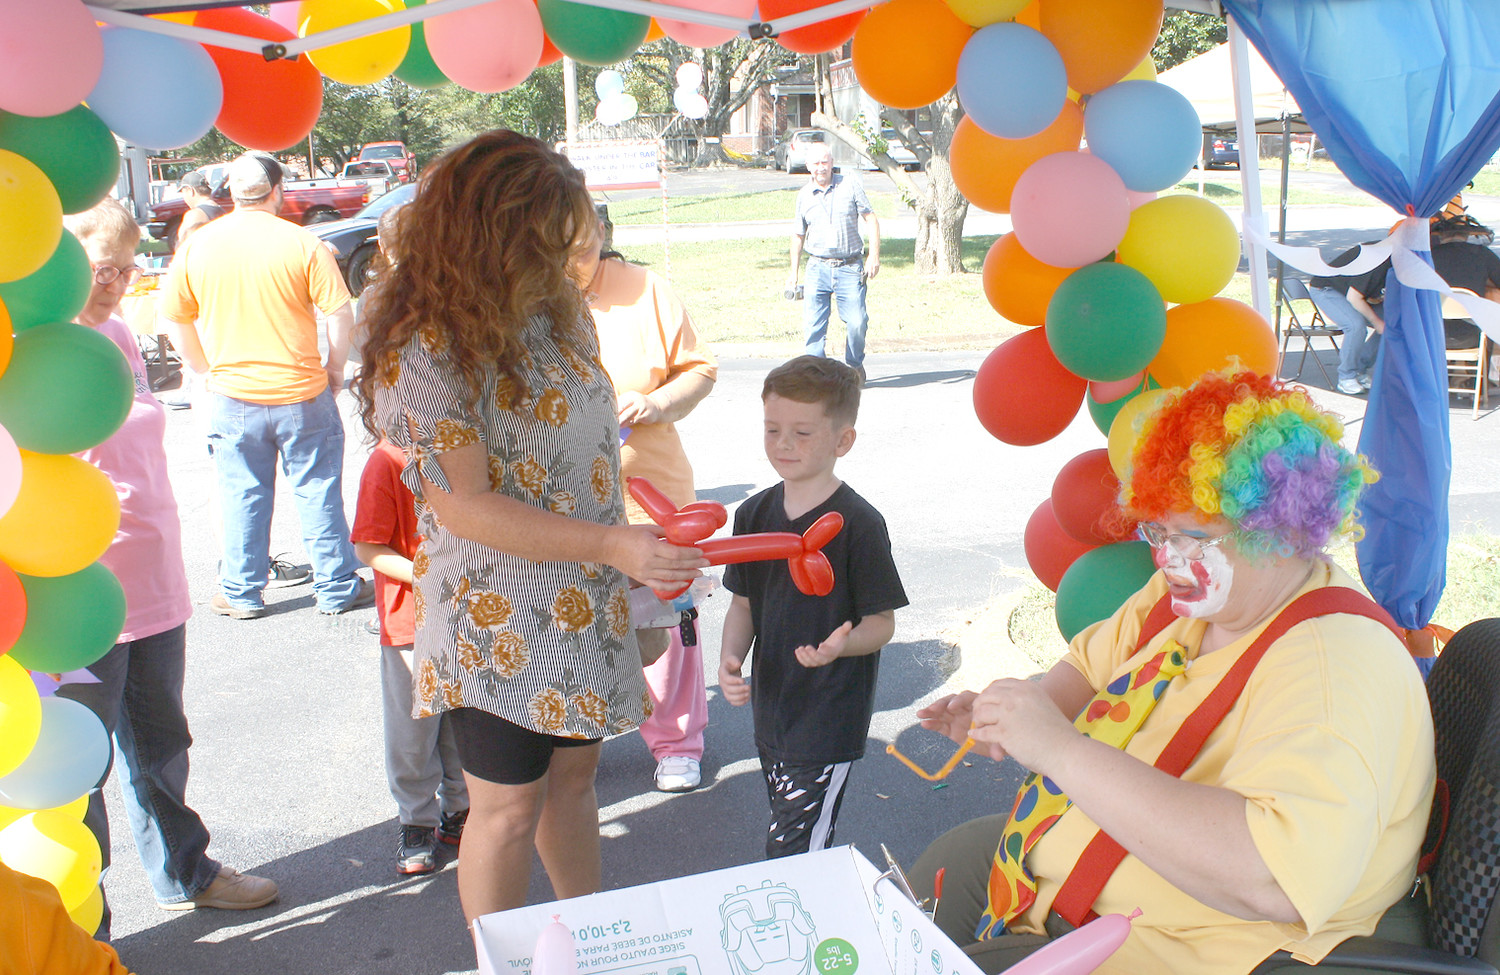 KIM MORRISON, in clown suit, delighted seven-year-old Bentley Catlett with a balloon animal at Friday's Fall Festival at the health department. The balloons were popular with the kids.